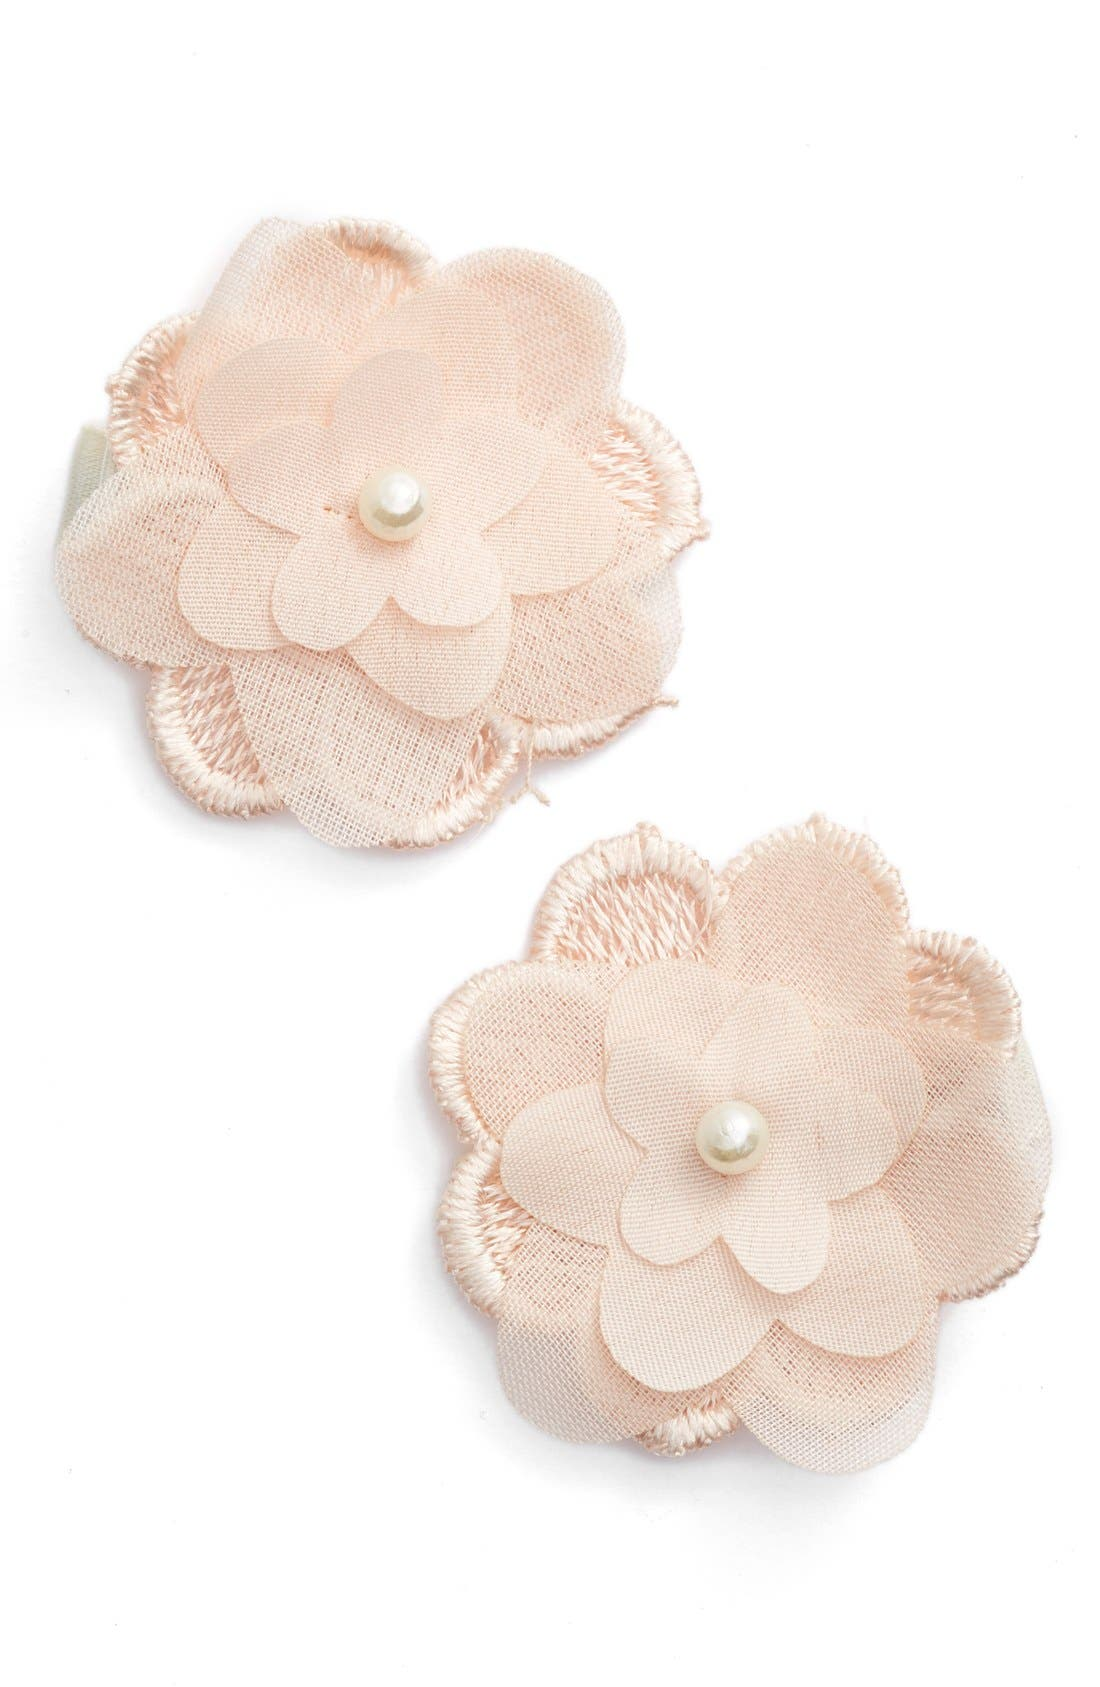 Alternate Image 1 Selected - PLH Bows & Laces Flower Hair Clips (Set of 2) (Baby Girls)